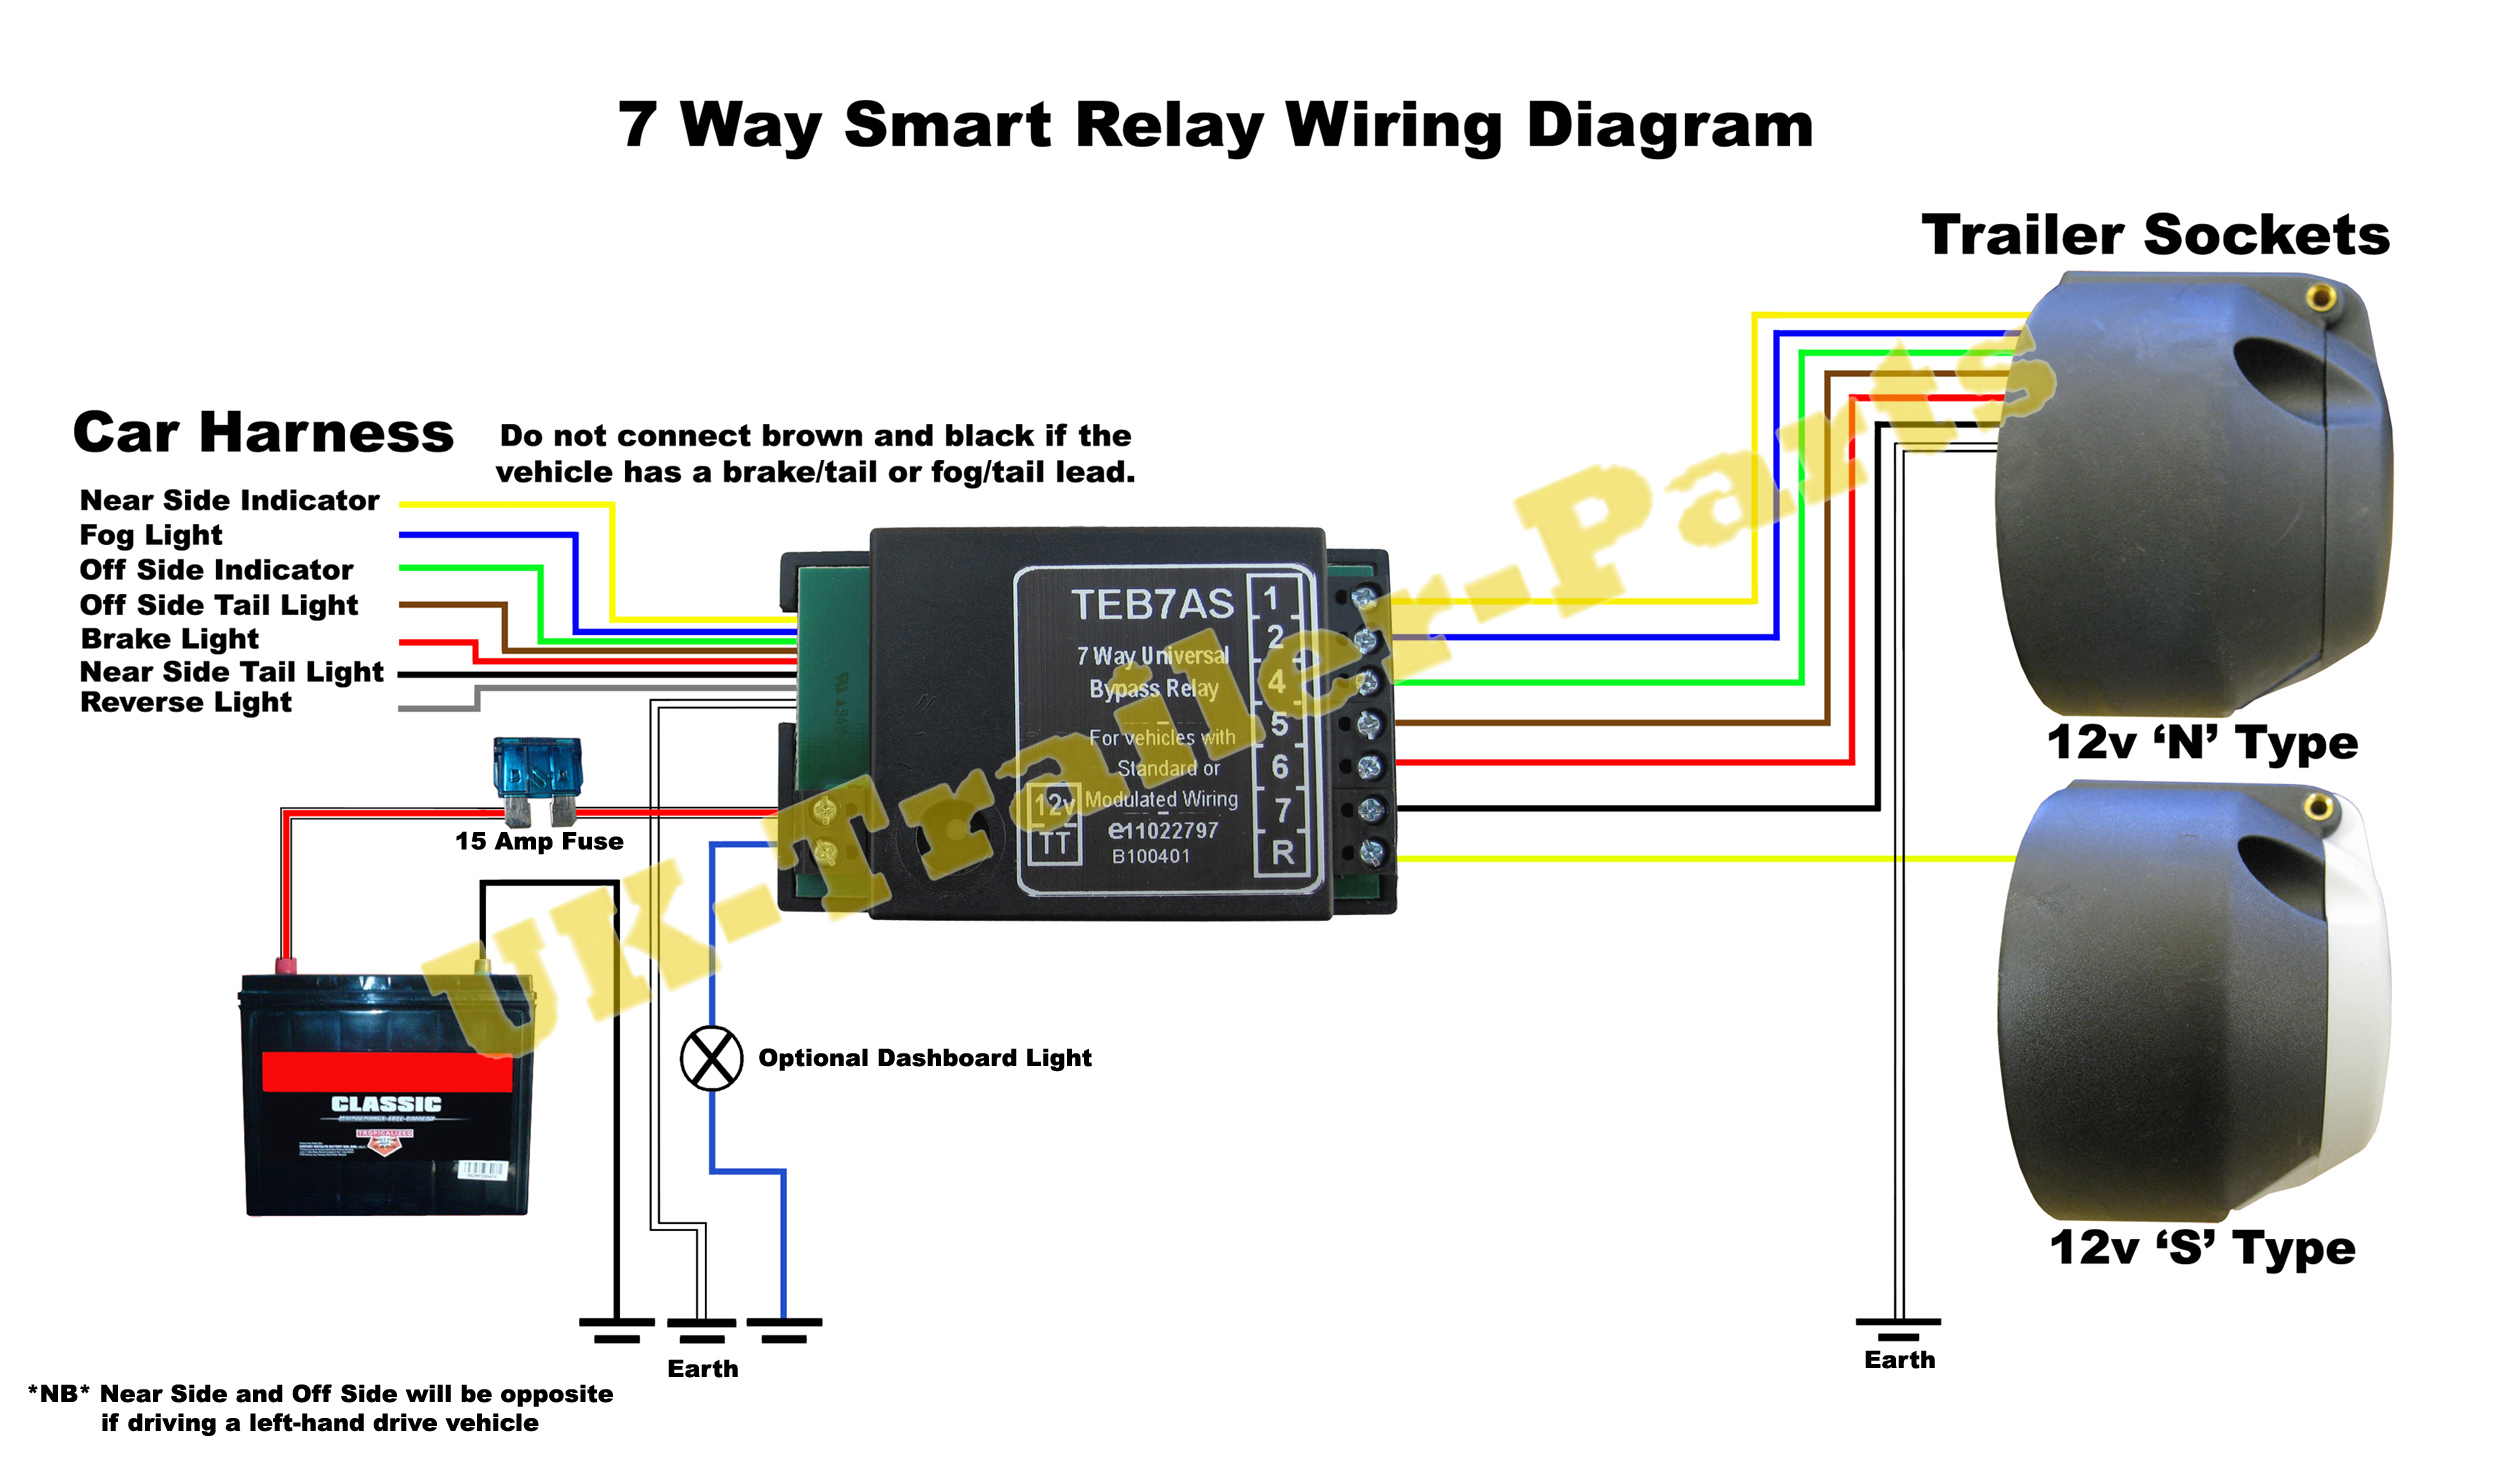 smart relay wiring diagram2 skoda yeti towbar wiring diagram skoda 13 \u2022 wiring diagrams j skoda fabia wiring diagram pdf download at virtualis.co